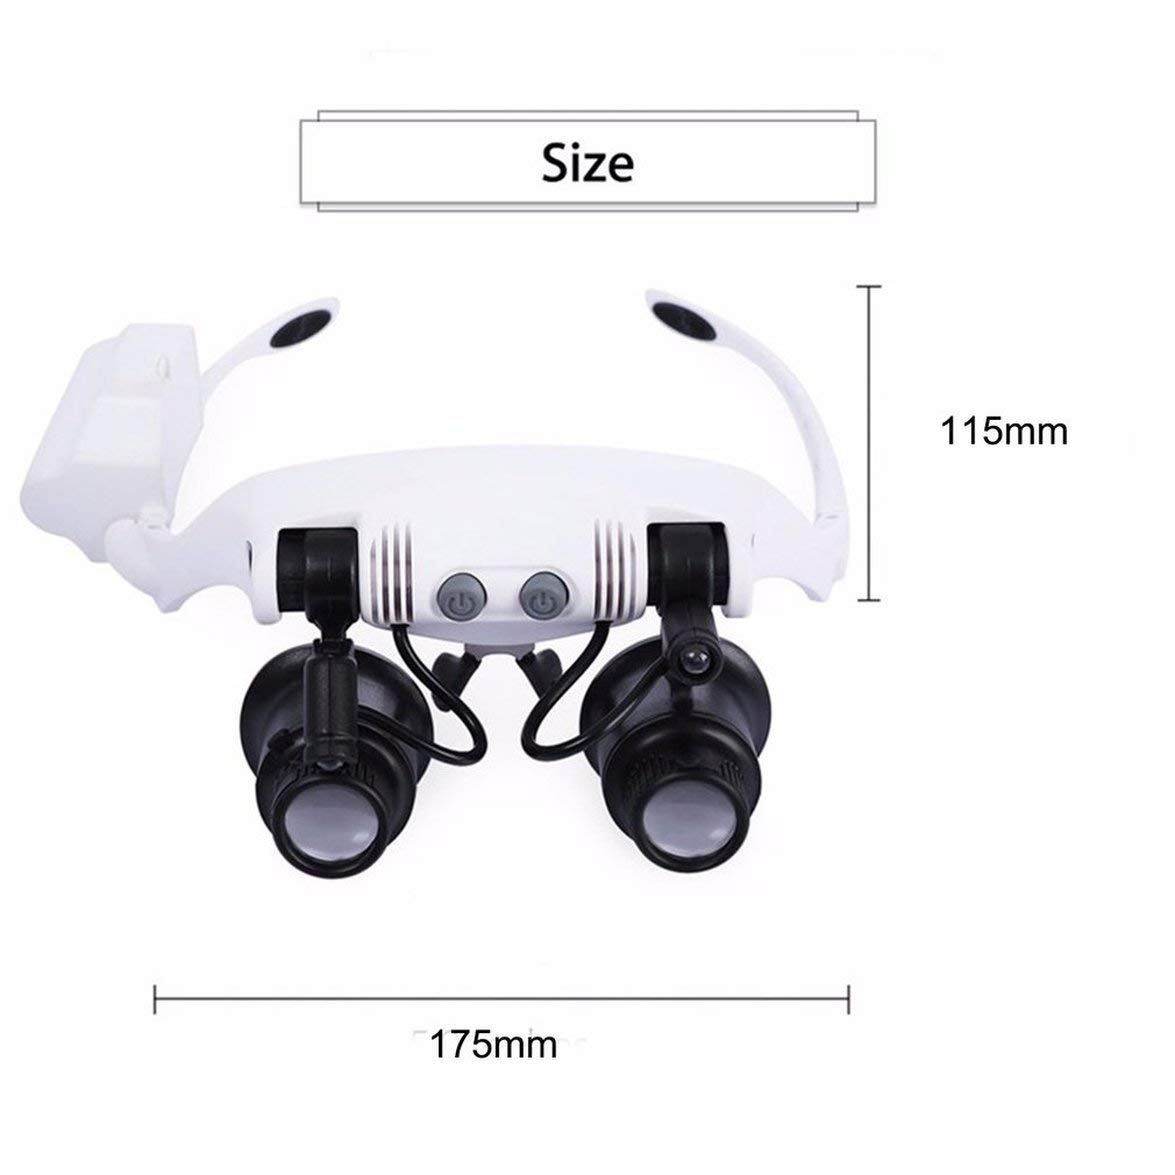 Pandamama Lightweight Foldable Headband Design Binoculars Magnifier Glasses LED Magnifying Glass with 2 LED Light for Jewelry Repair